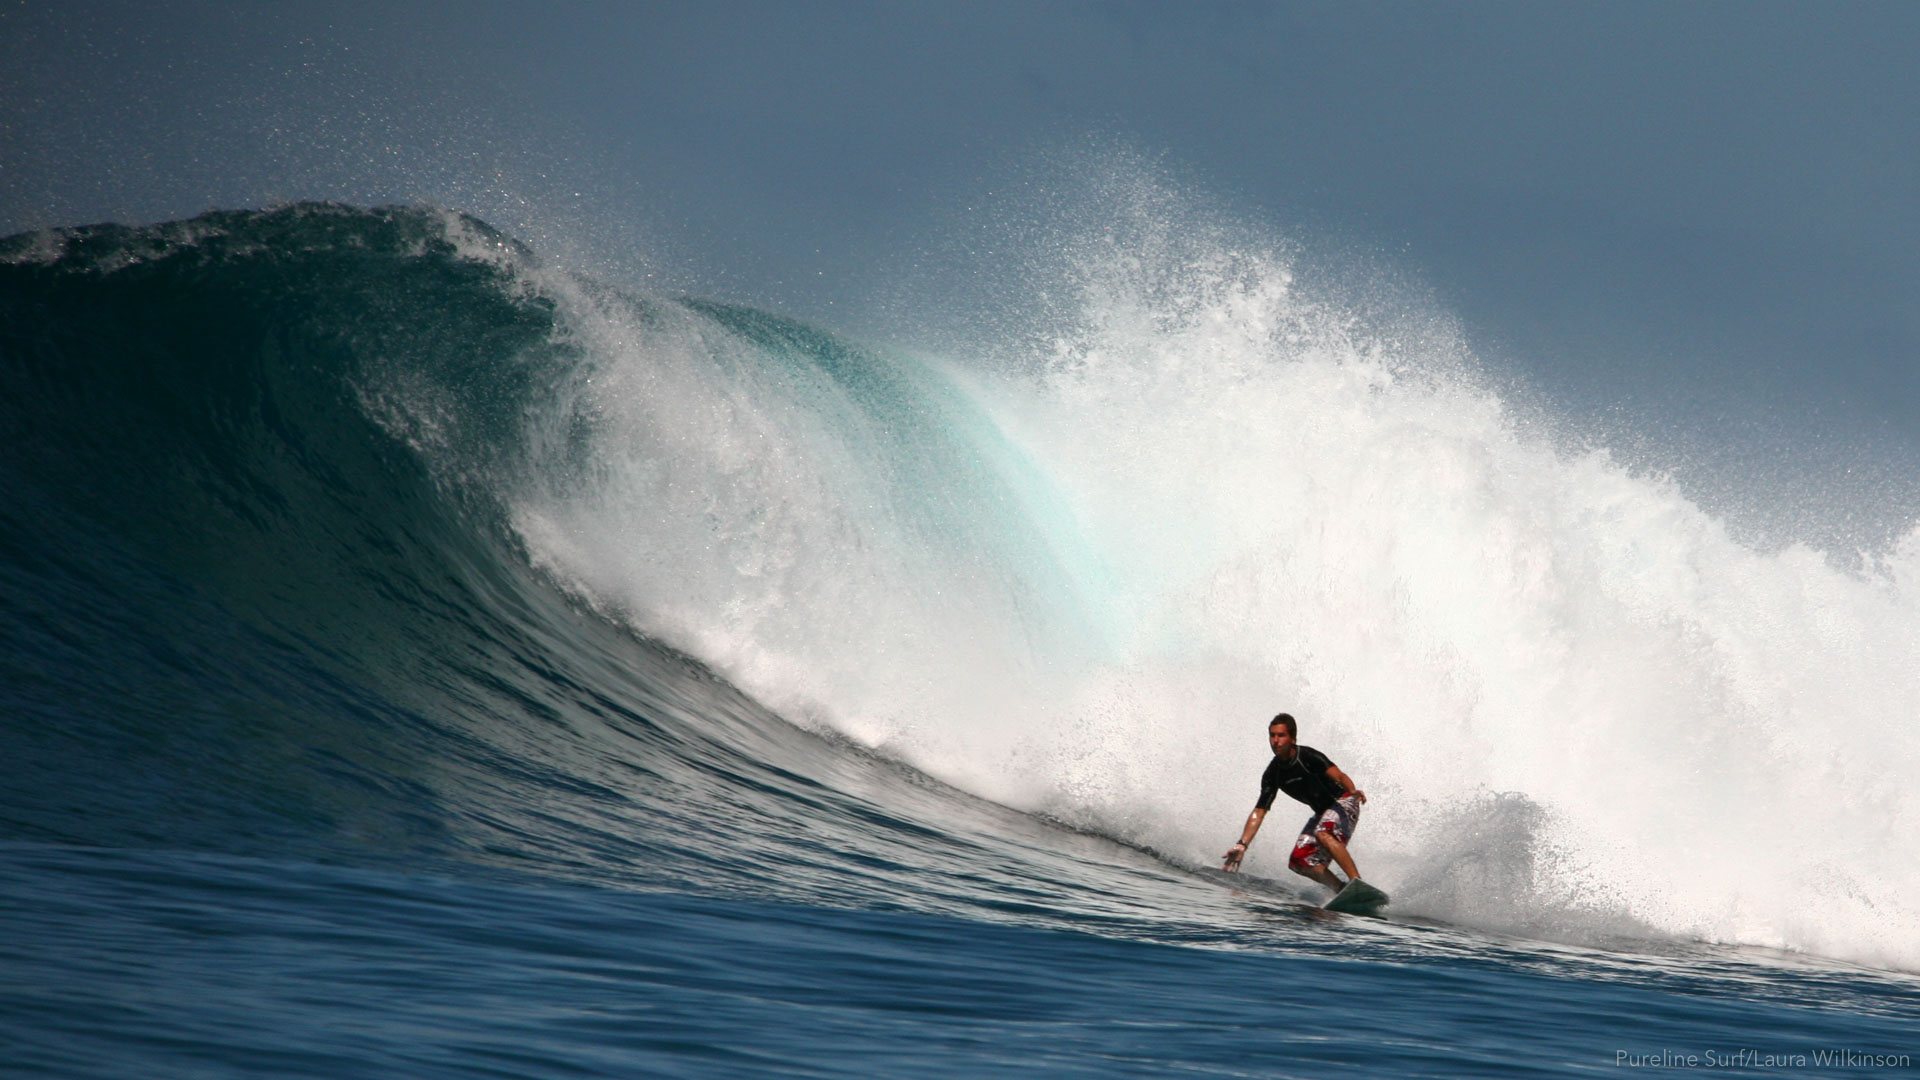 A Pureline surfer performing a forehand bottom turn on a triple overhead wave in Fiji, one of Pureline Surf's coaching destinations.